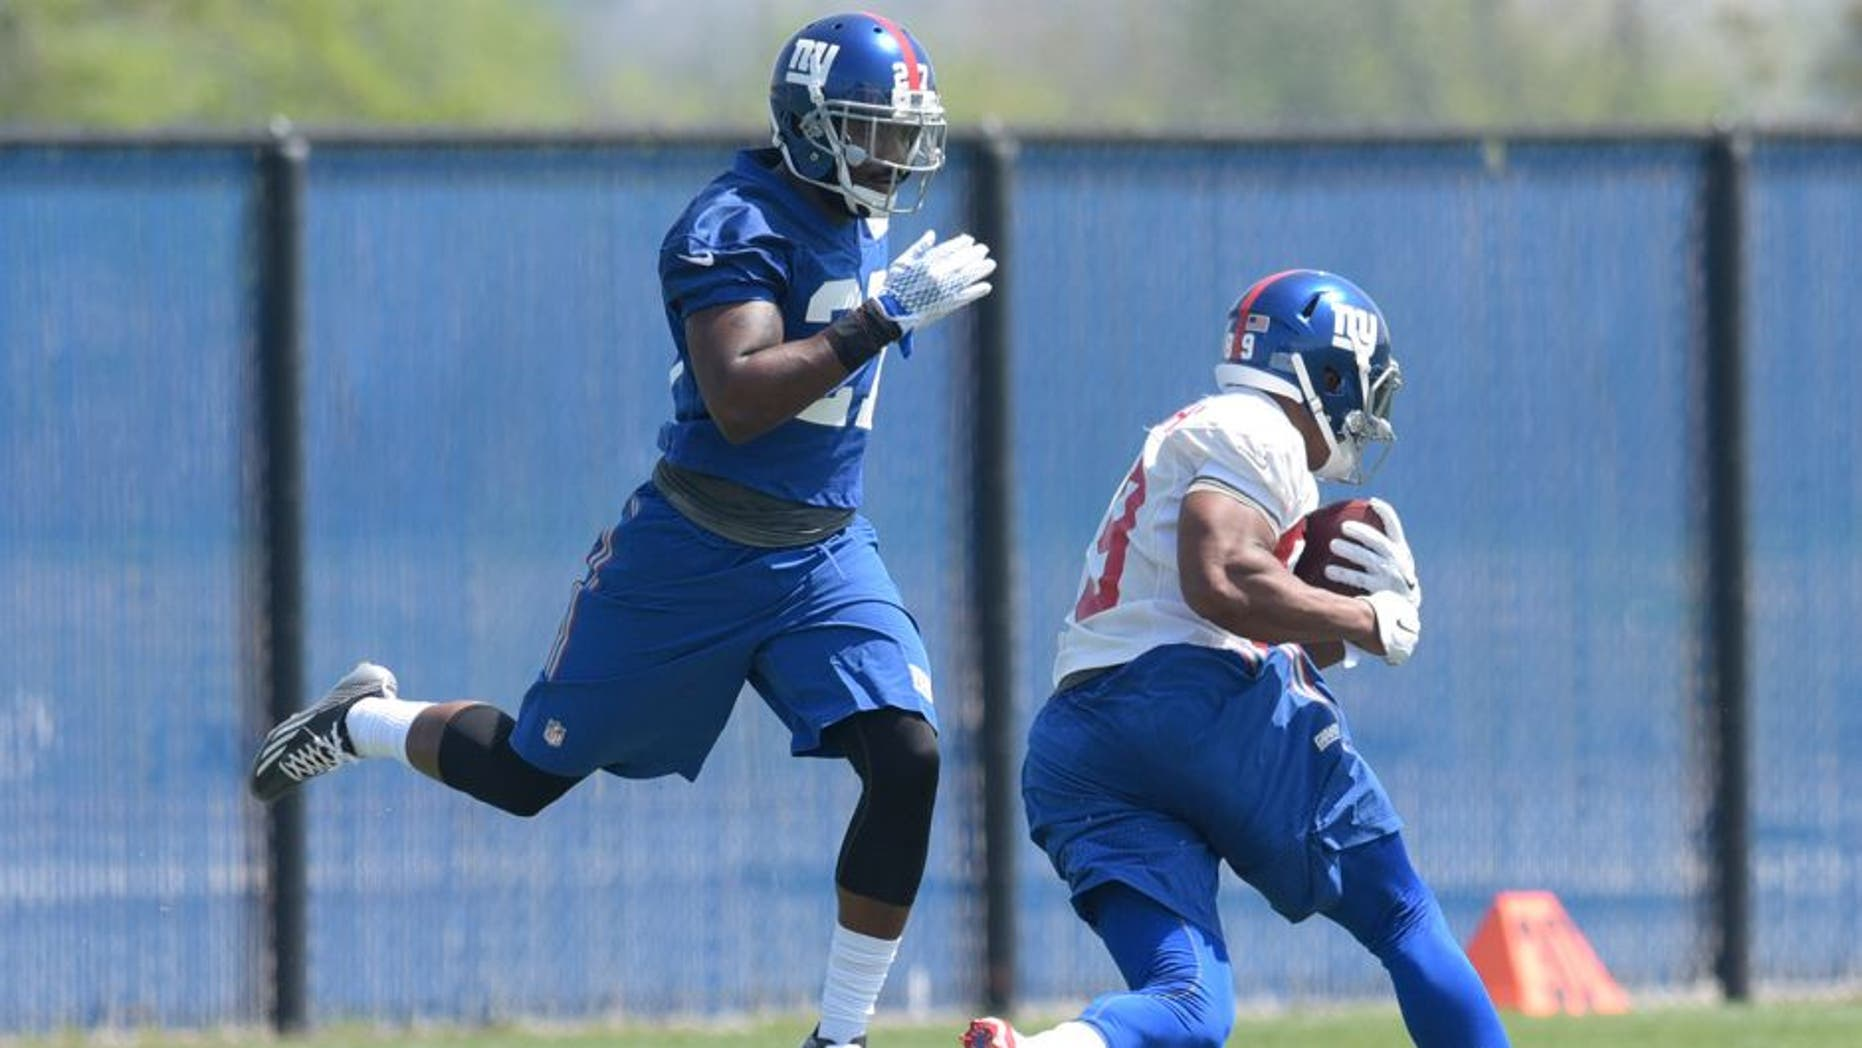 New York Giants second round draft pick Landon Collins, left, avoids a collision with Jerome Cunningham during practice at the team's NFL football rookie minicamp Friday, May 8, 2015, in East Rutherford, N.J. (AP Photo/Bill Kostroun)